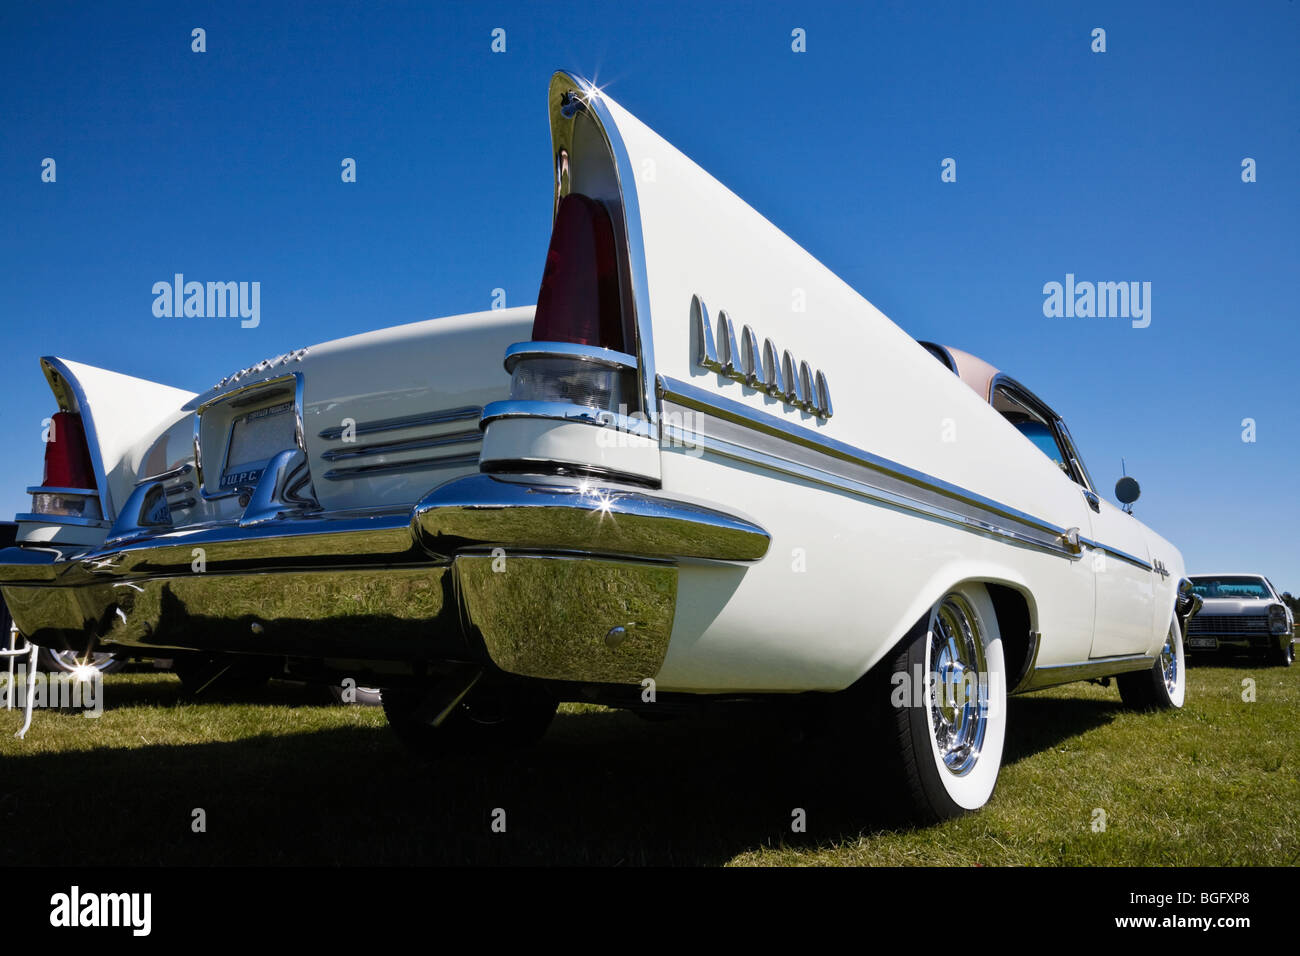 Rear view at a old chrysler stock photo 27395152 alamy rear view at a old chrysler biocorpaavc Choice Image